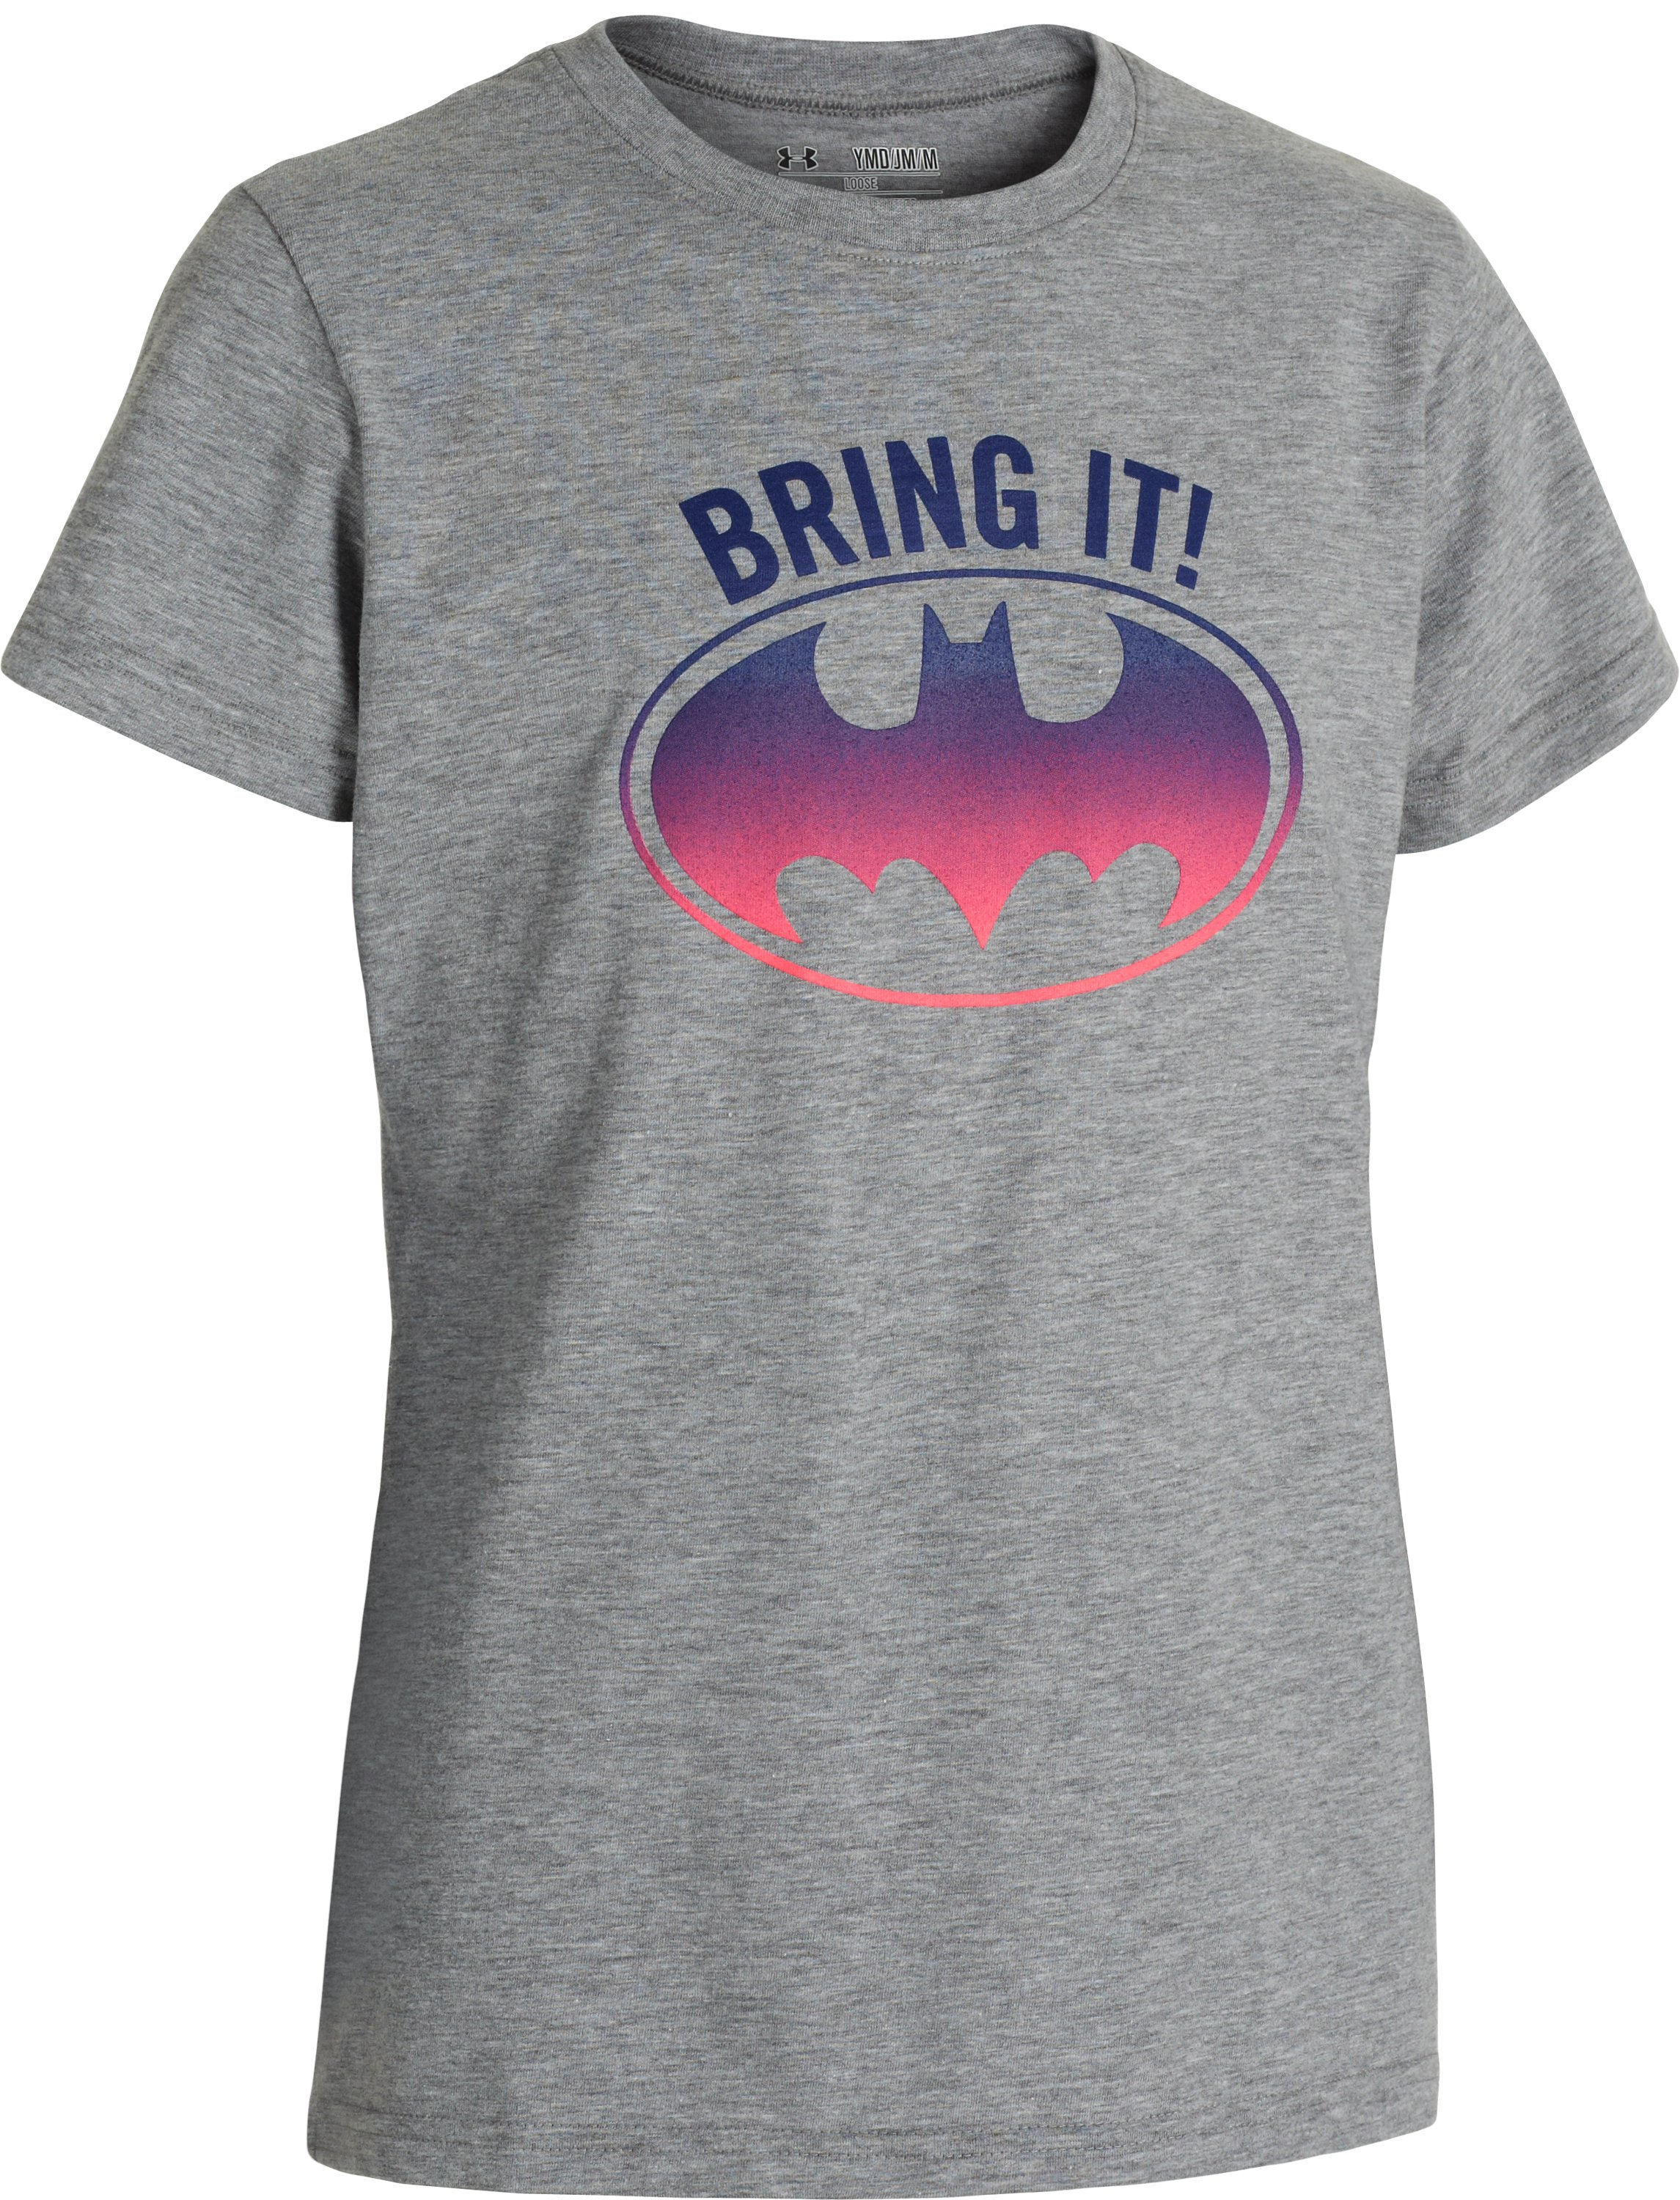 Girls' Under Armour® Alter Ego Batgirl Bring It T-Shirt, True Gray Heather, undefined